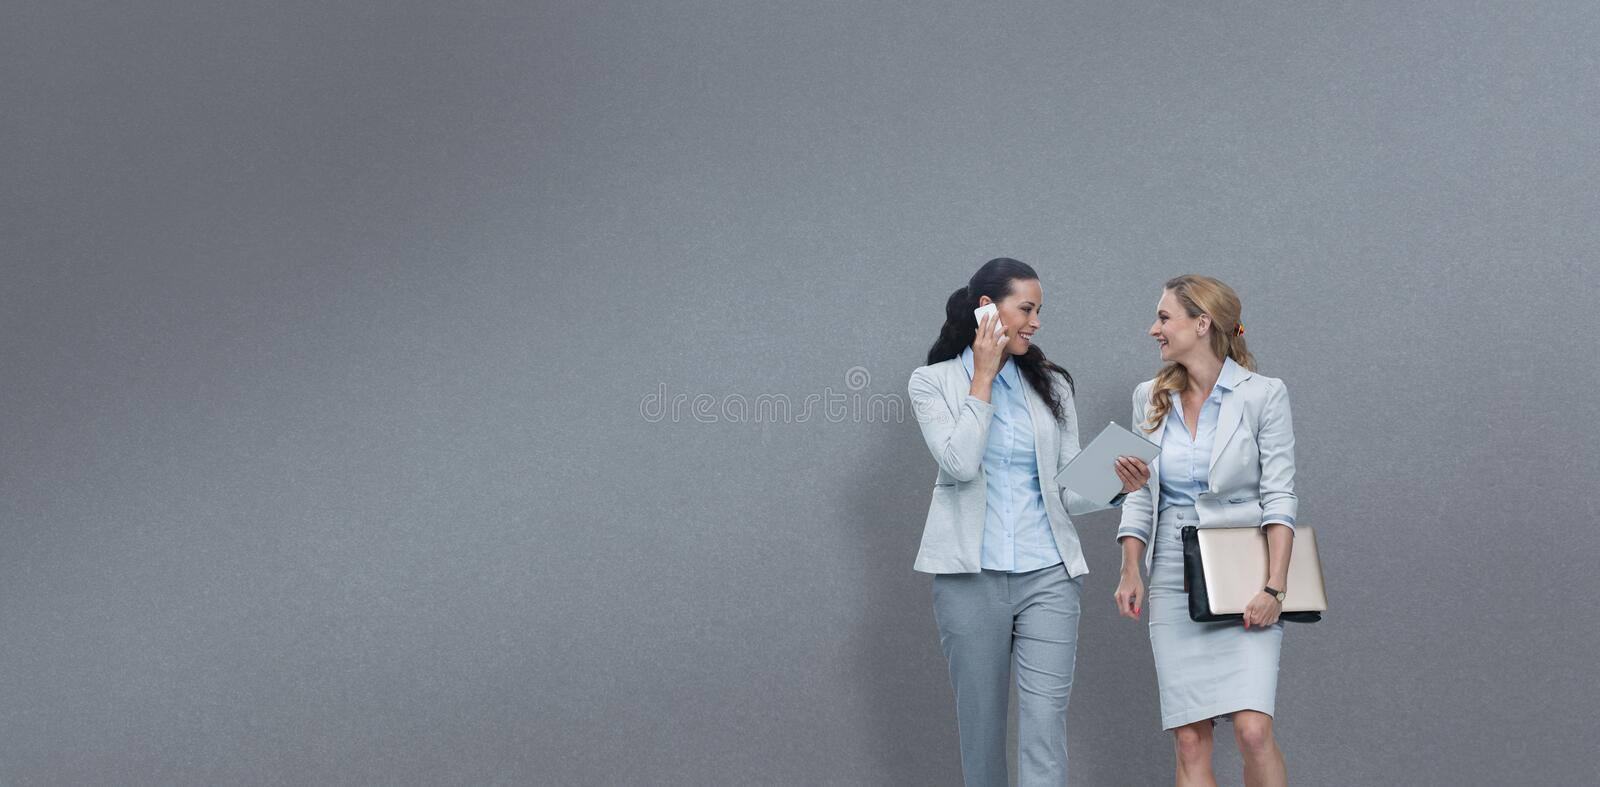 Composite image of businesswomen using mobile phone while walking stock photography